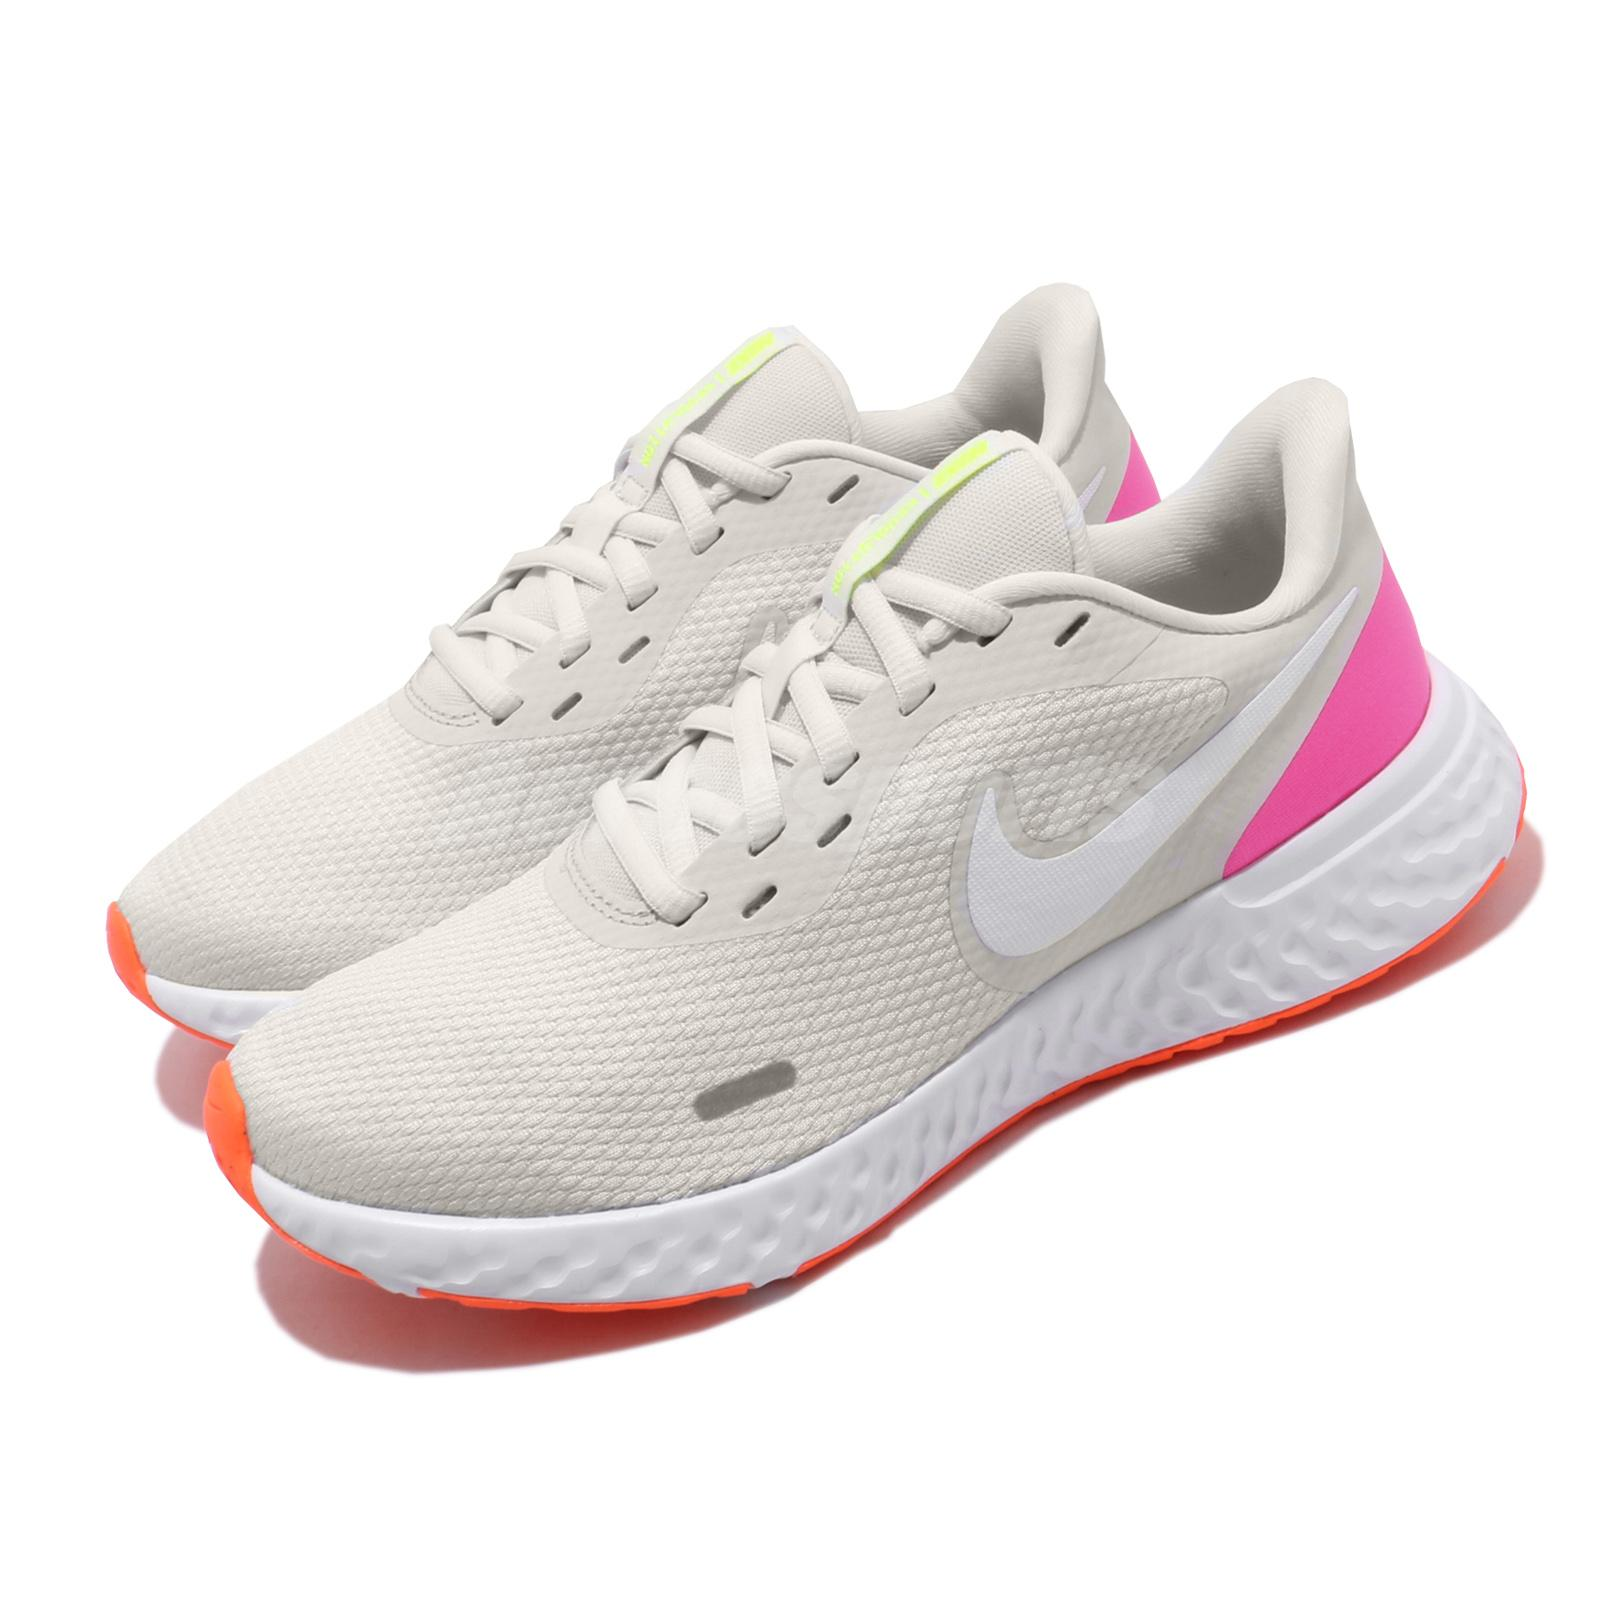 zoo Leeds tal vez  Nike Wmns Revolution 5 Grey White Pink Womens Running Shoes BQ3207-007 |  eBay